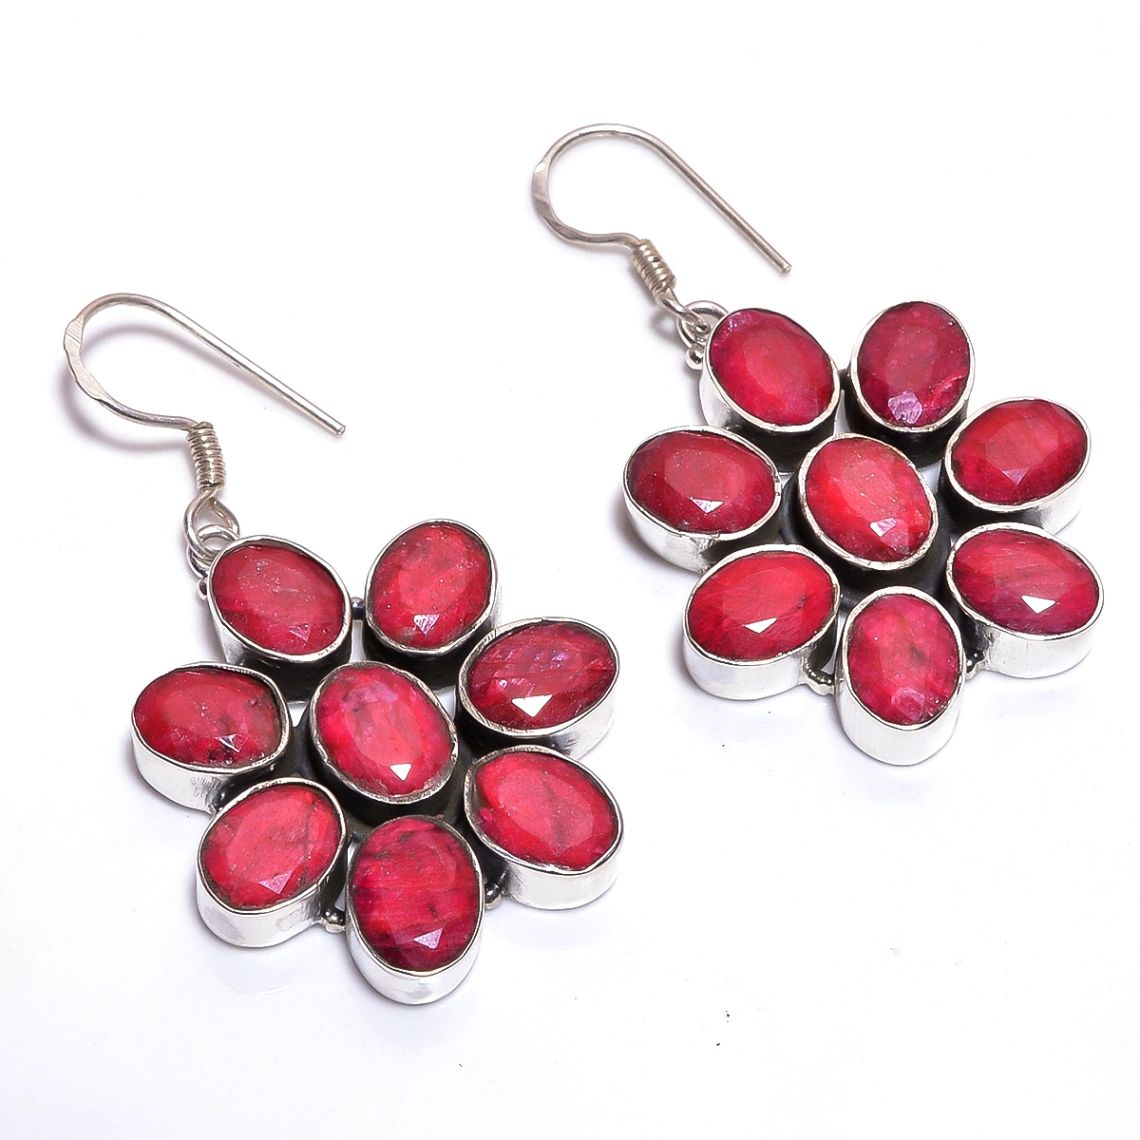 Corundum Ruby Gemstone 925 Sterling Silver Earrings